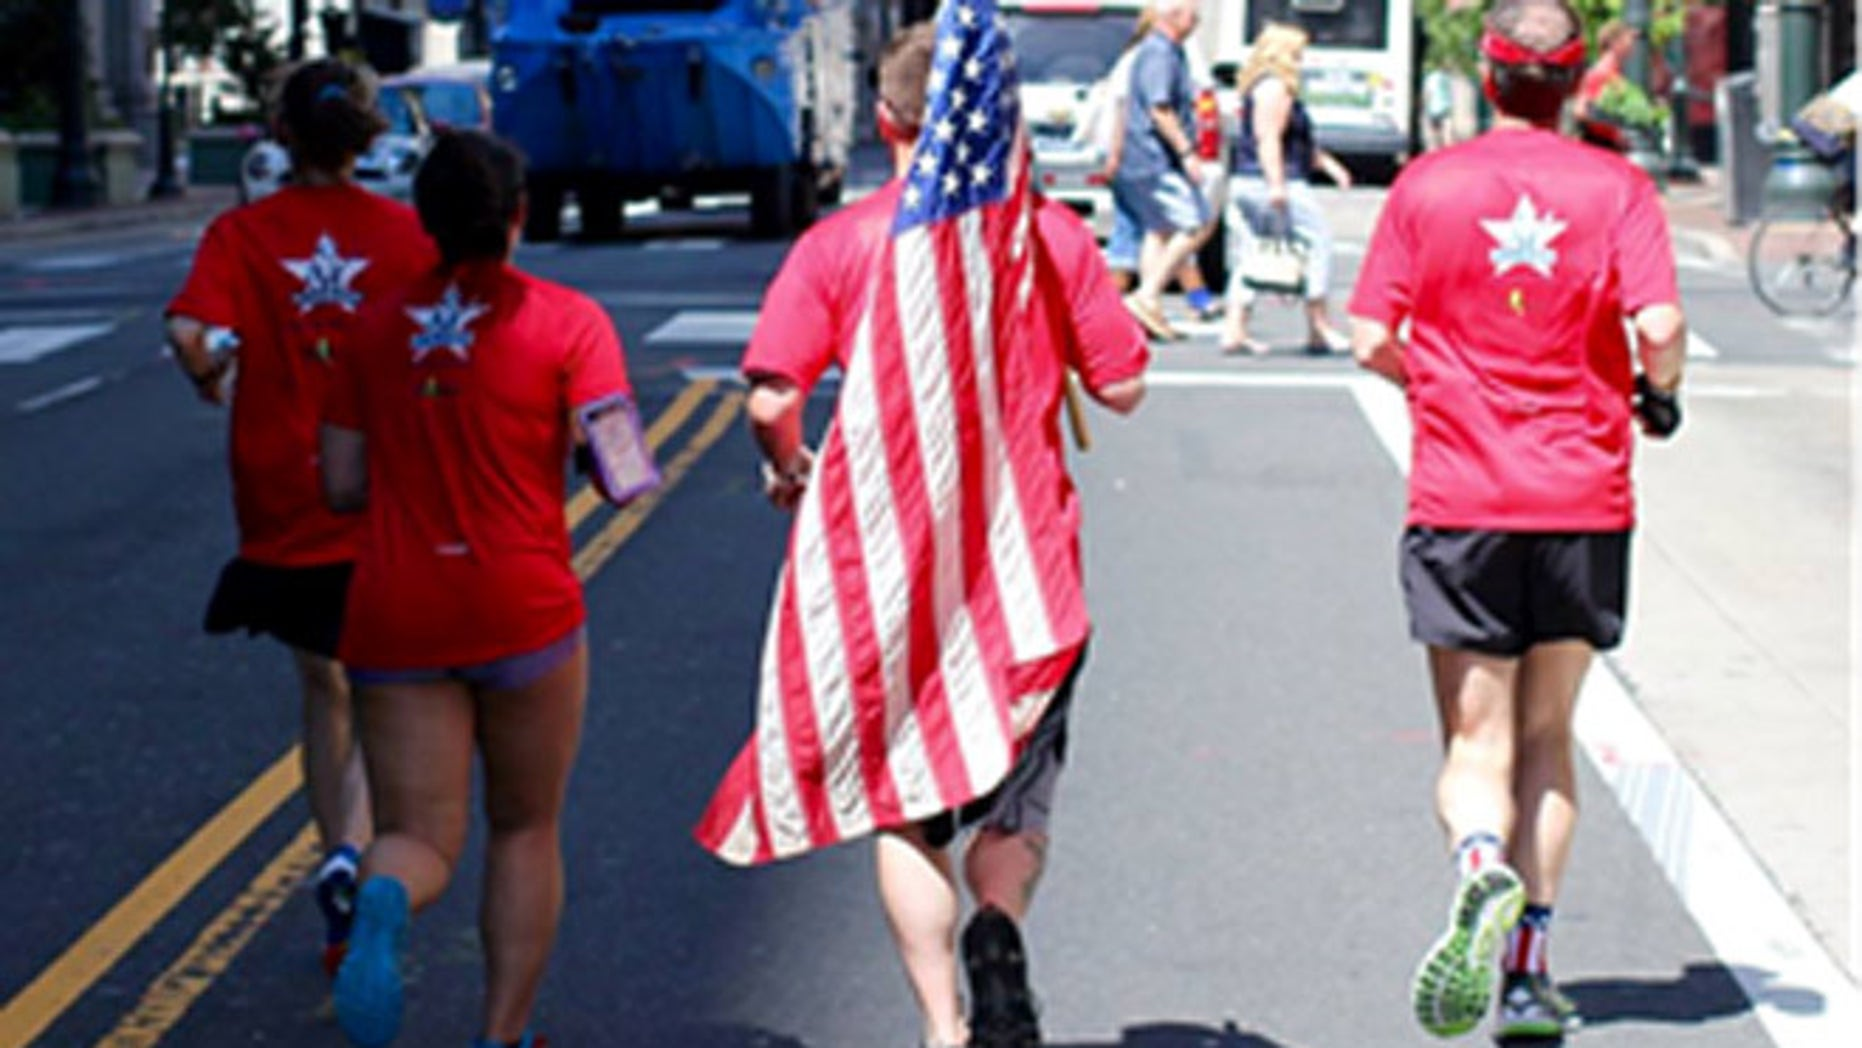 The flag on its way to the handoff on Philadelphia's historic Rocky steps.